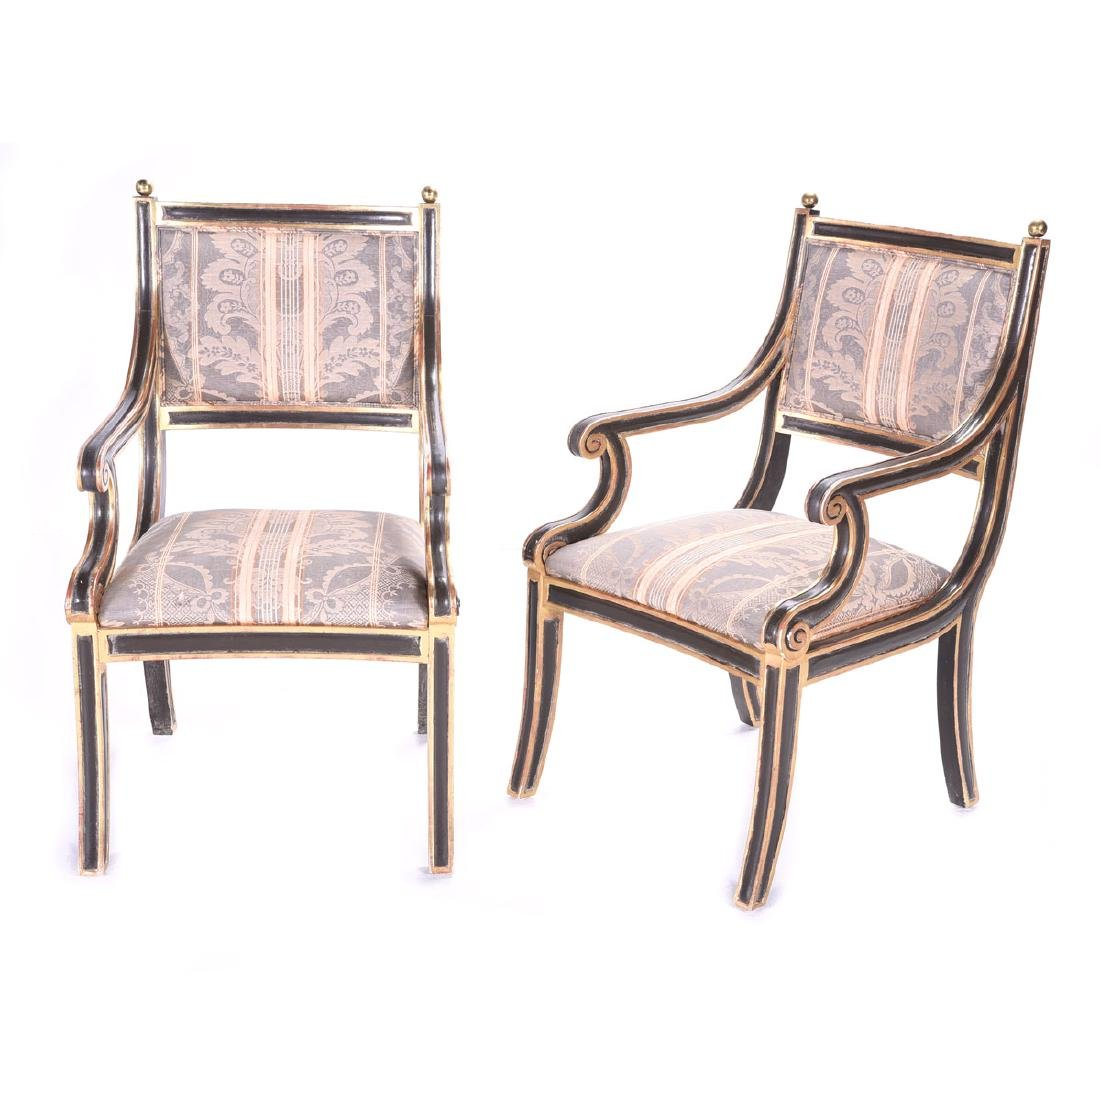 Pair of Regency Style Black and Gilt Armchairs